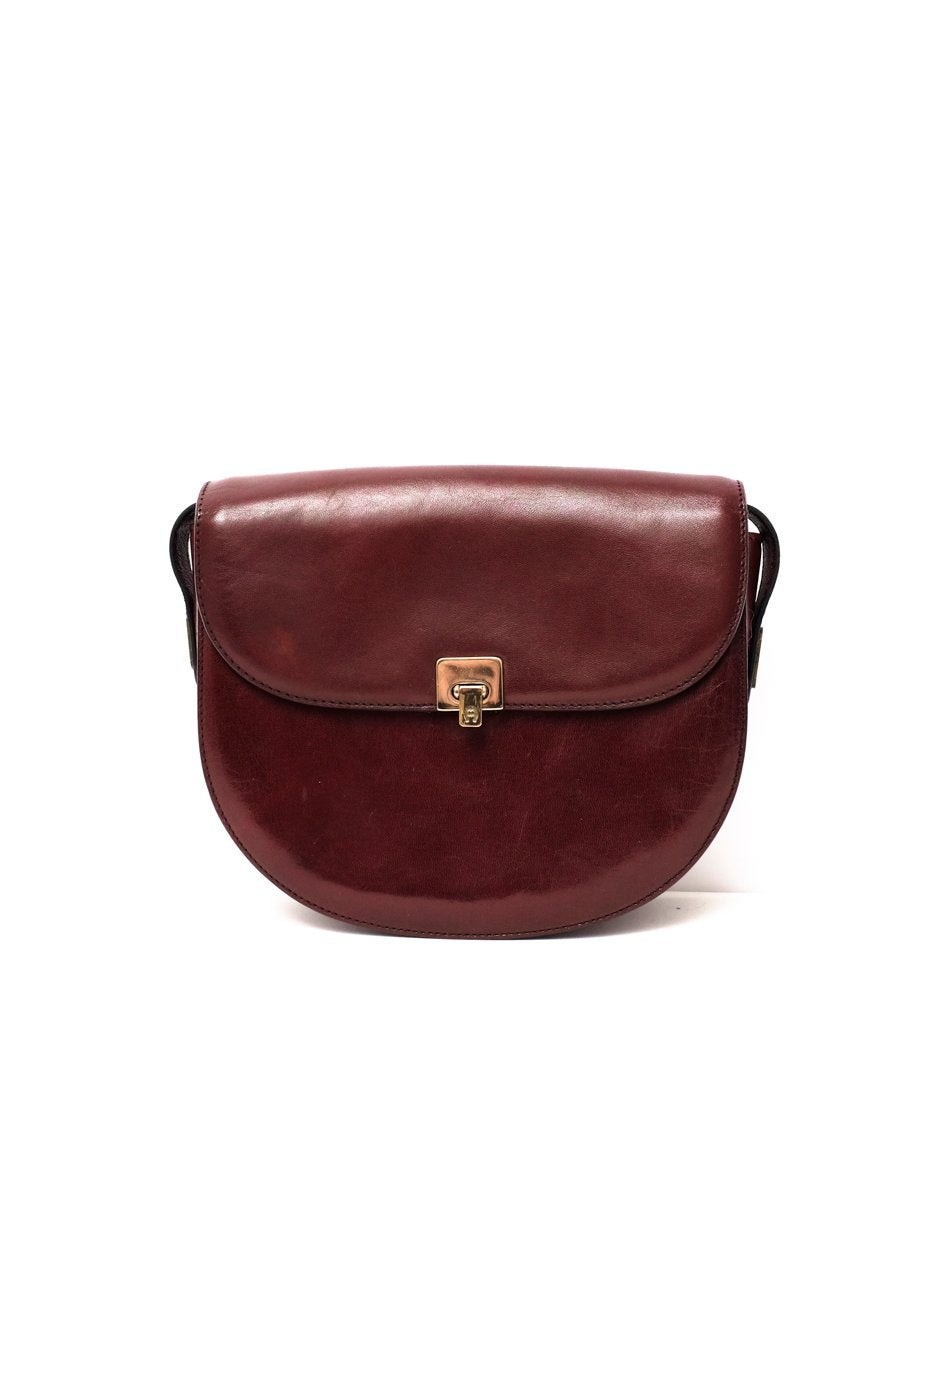 0271_AIGNER HALF MOON BAG BORDEAUX